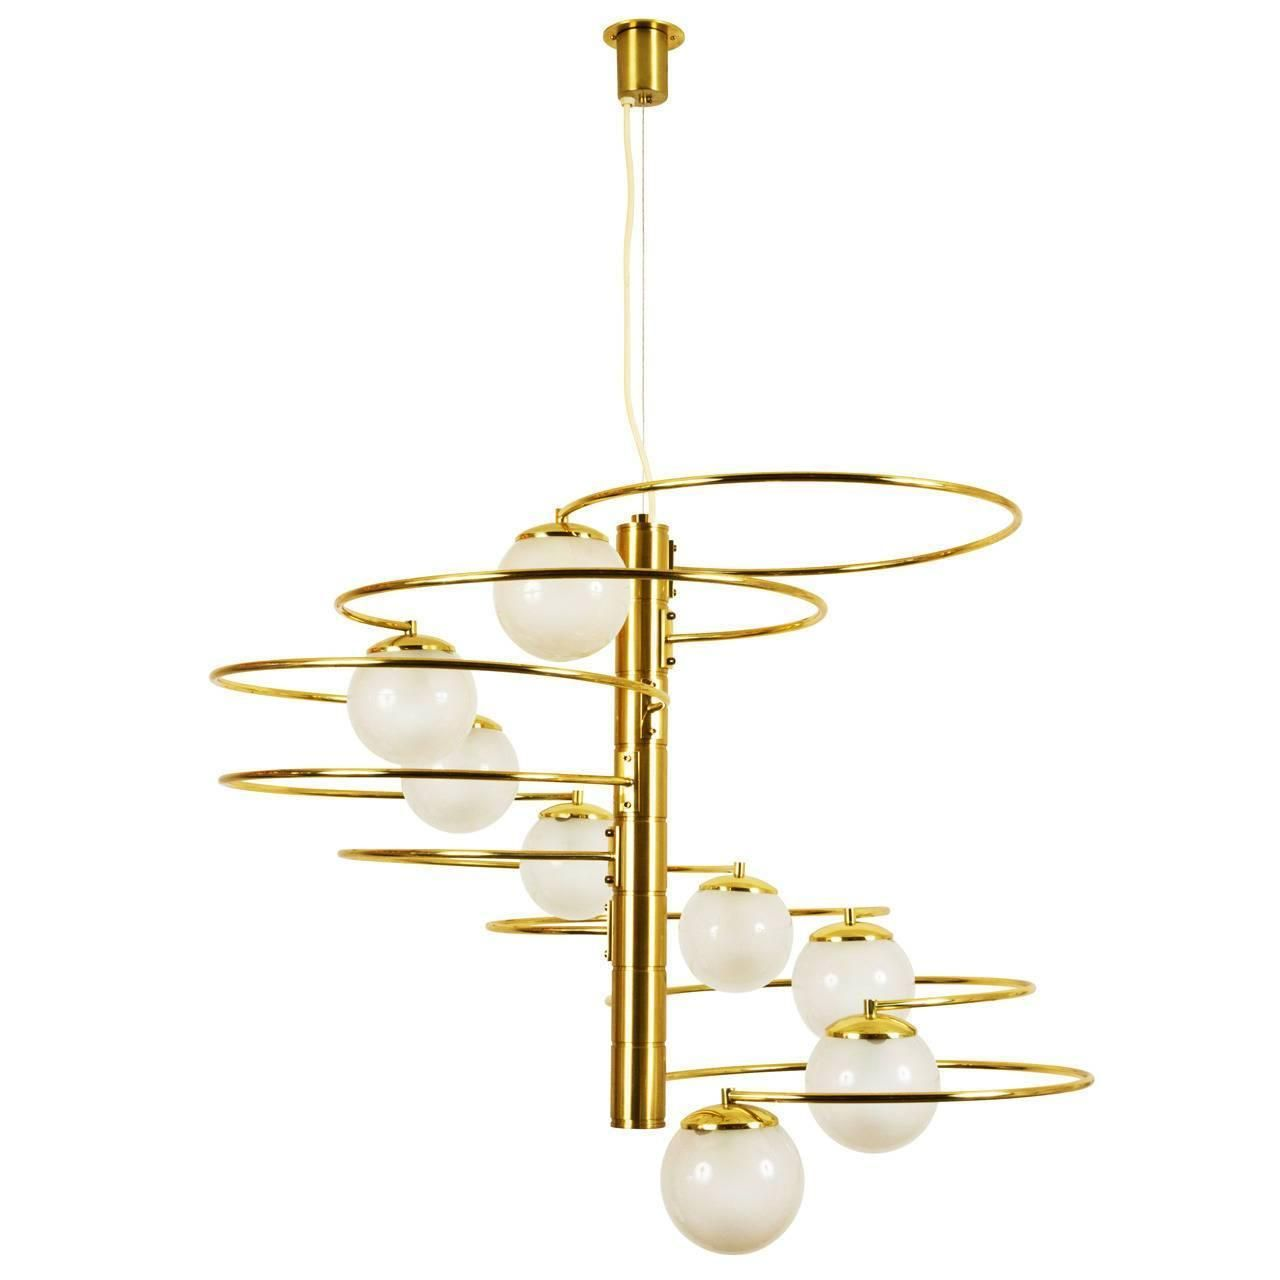 1970s Lumi Chandelier | From a unique collection of antique and modern chandeliers and pendants at https://www.1stdibs.com/furniture/lighting/chandeliers-pendant-lights/